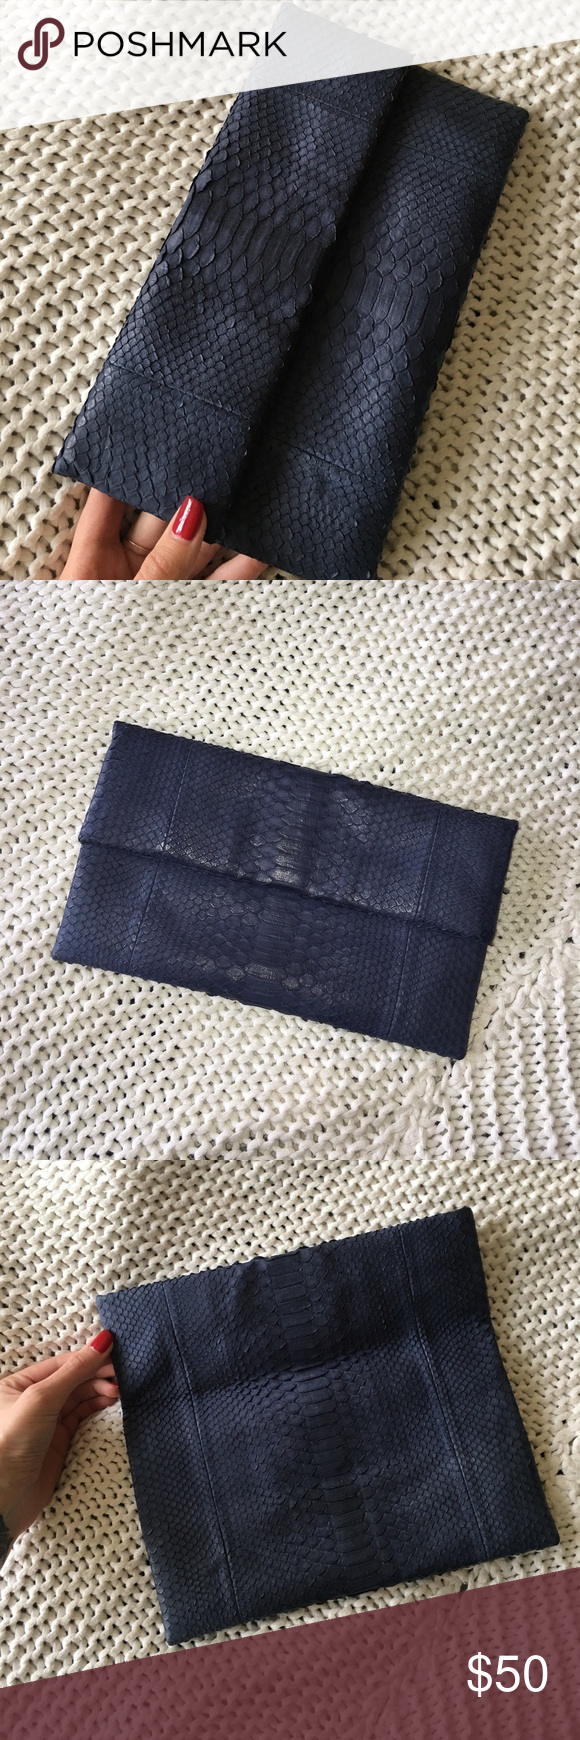 leather snakeskin clutch Dusty blue leather clutch. Measurements shown. I purchased this in high end boutique in Phuket Thailand..it was never used. ❤️ listed as Zara for views. Zara Bags Clutches & Wristlets